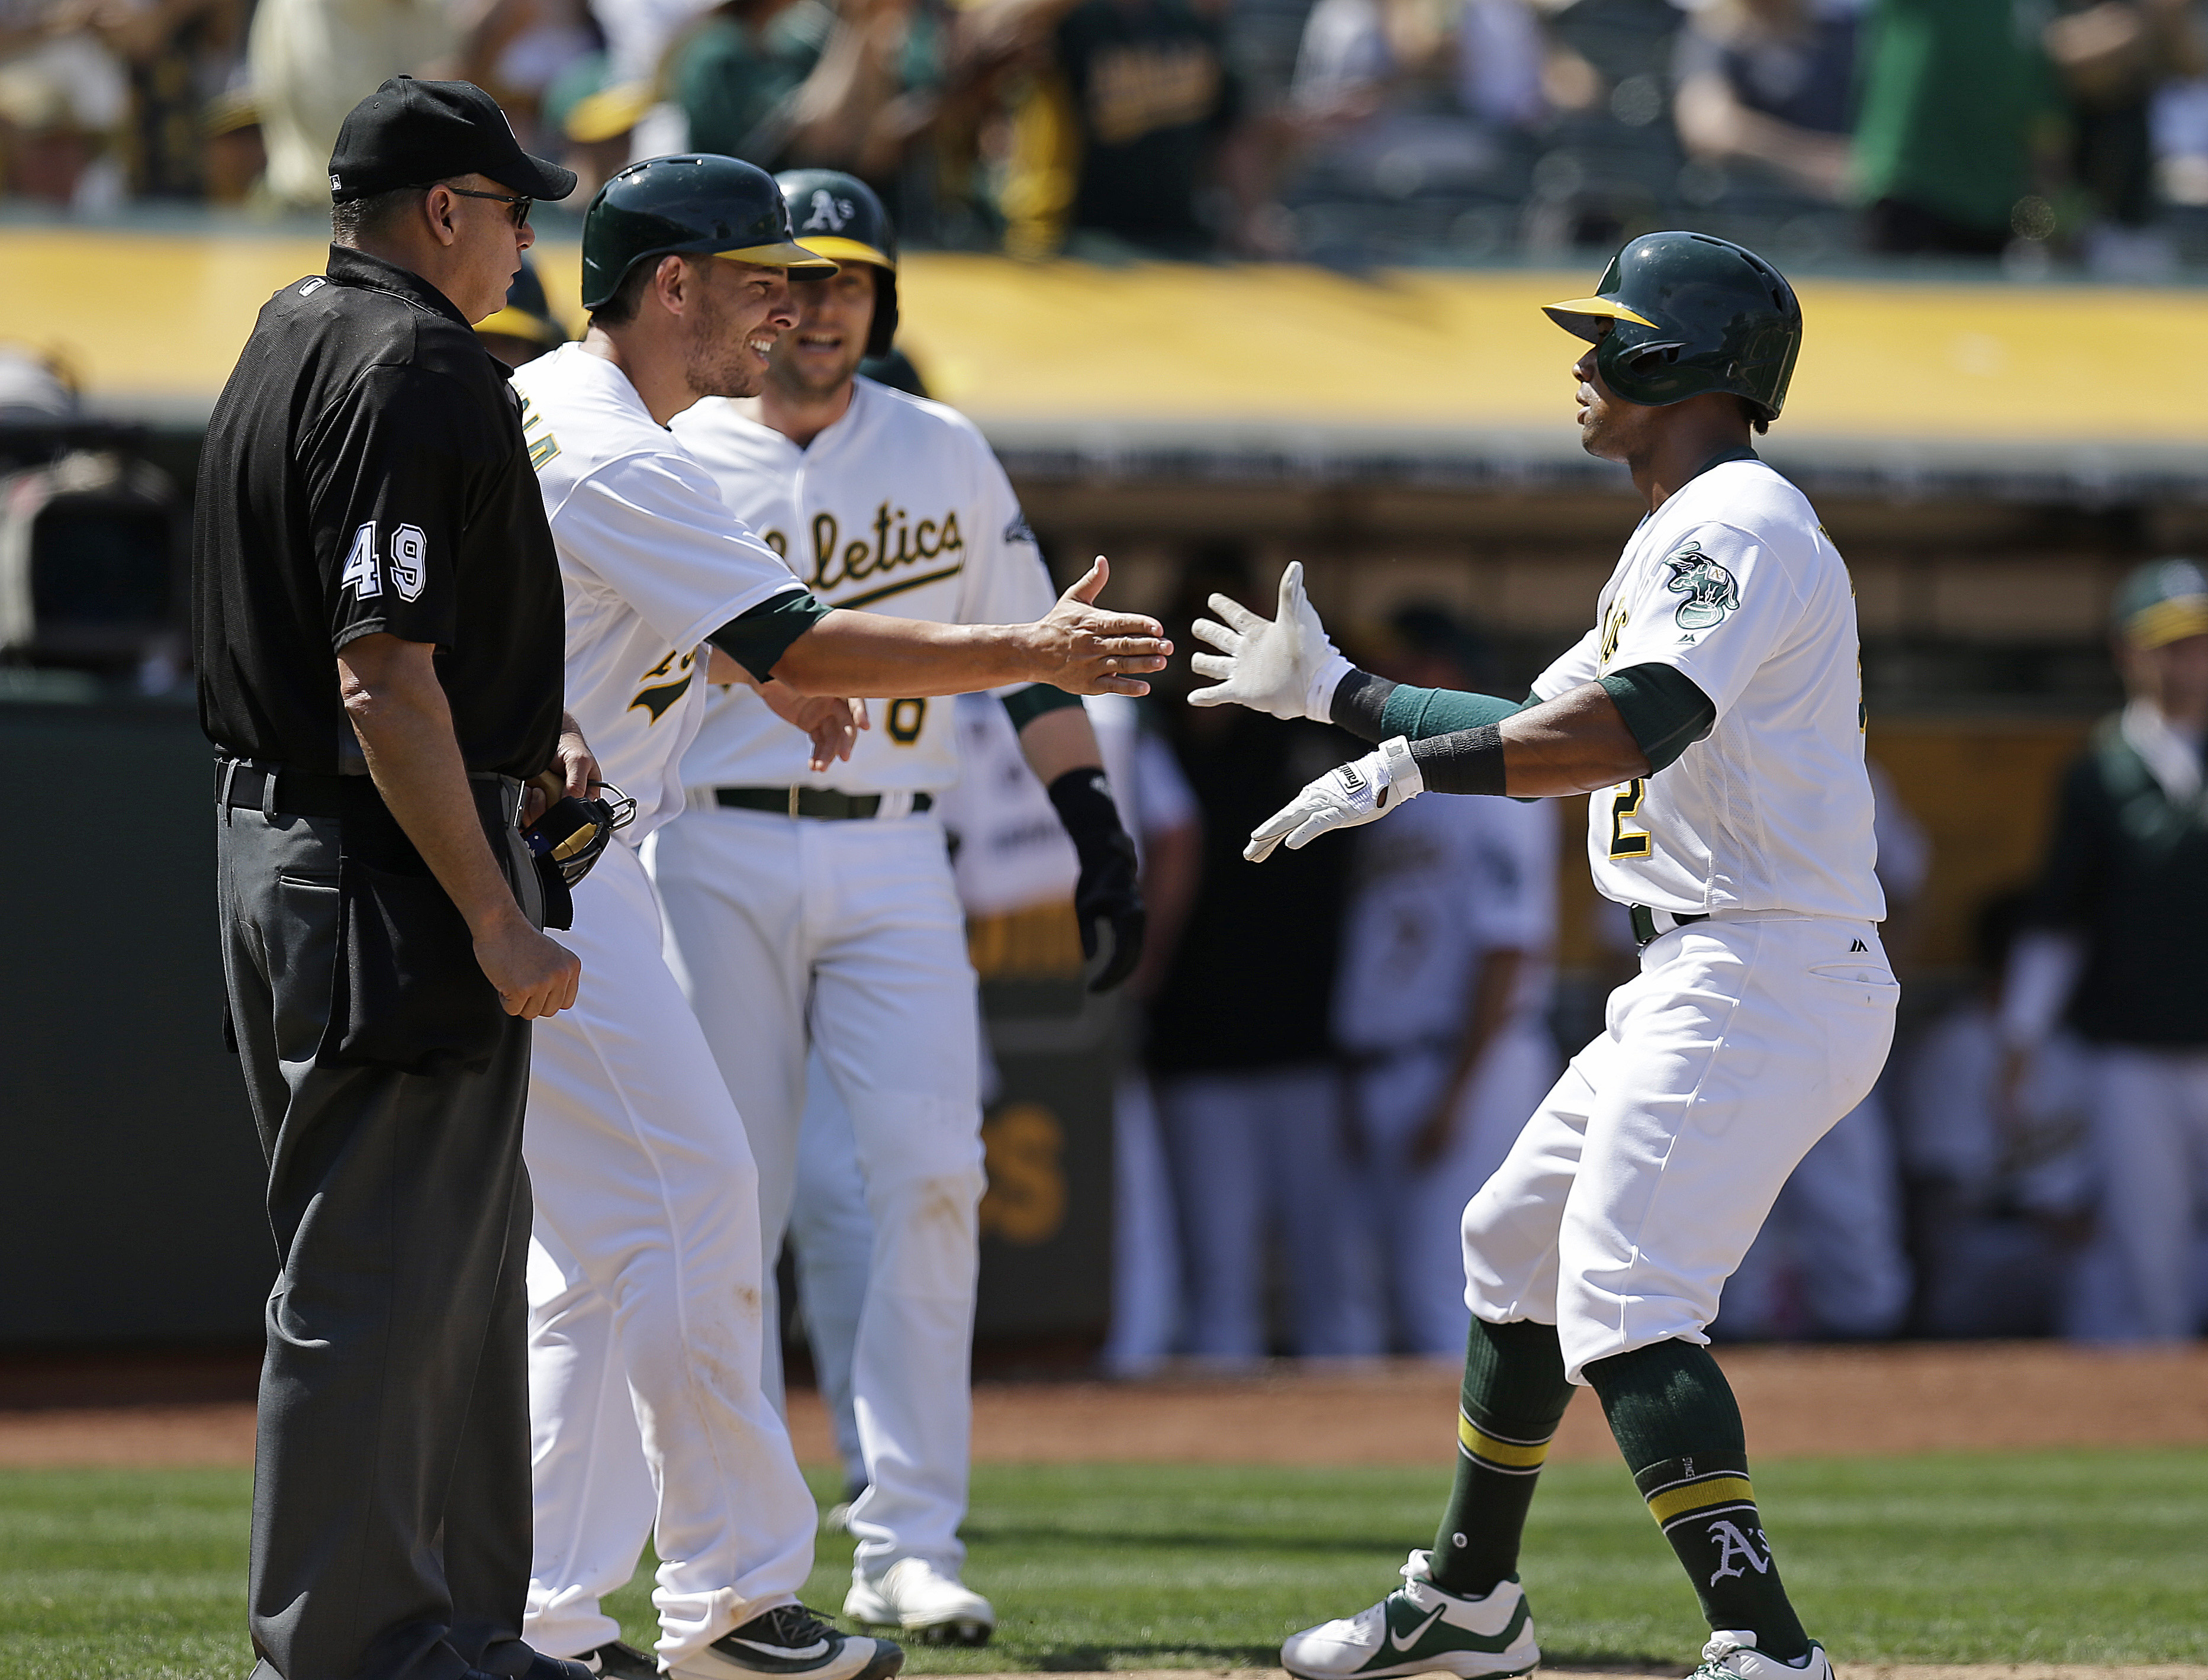 Oakland Athletics' Khris Davis, right, is congratulated by Danny Valencia after hitting a three-run home run off Detroit Tigers' Alex Wilson in the seventh inning of a baseball game Saturday, May 28, 2016, in Oakland, Calif. Home plate umpire Andy Fletche